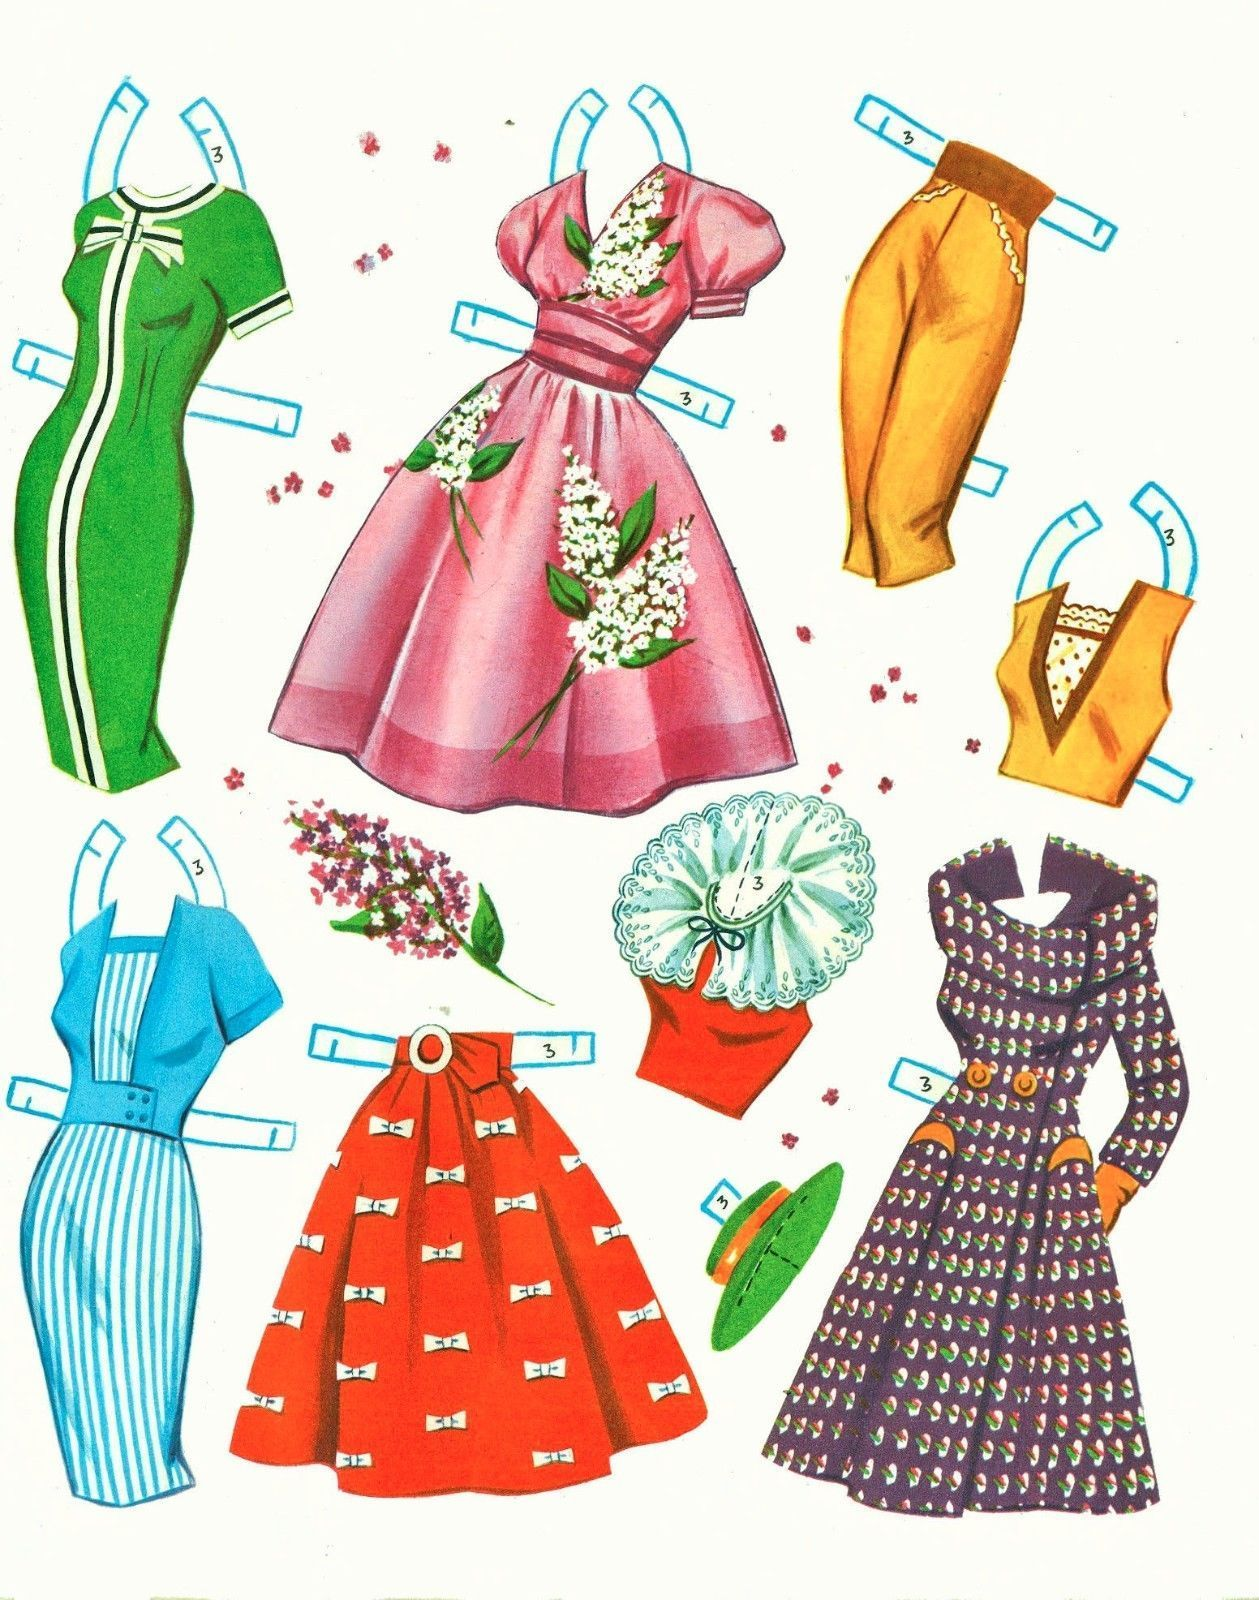 VINTAGE UNCUT 1960s LILAC TIME PAPER DOLL ~SAALFIELD~ORG SZ~LASER REPRO NO1 SELL  | eBay,  #1960s #doll #eBay #Lilac #No1 #paper #paperDollhouses #REPRO #SAALFIELDORG #Sell #SZLASER #Time #Uncut #Vintage